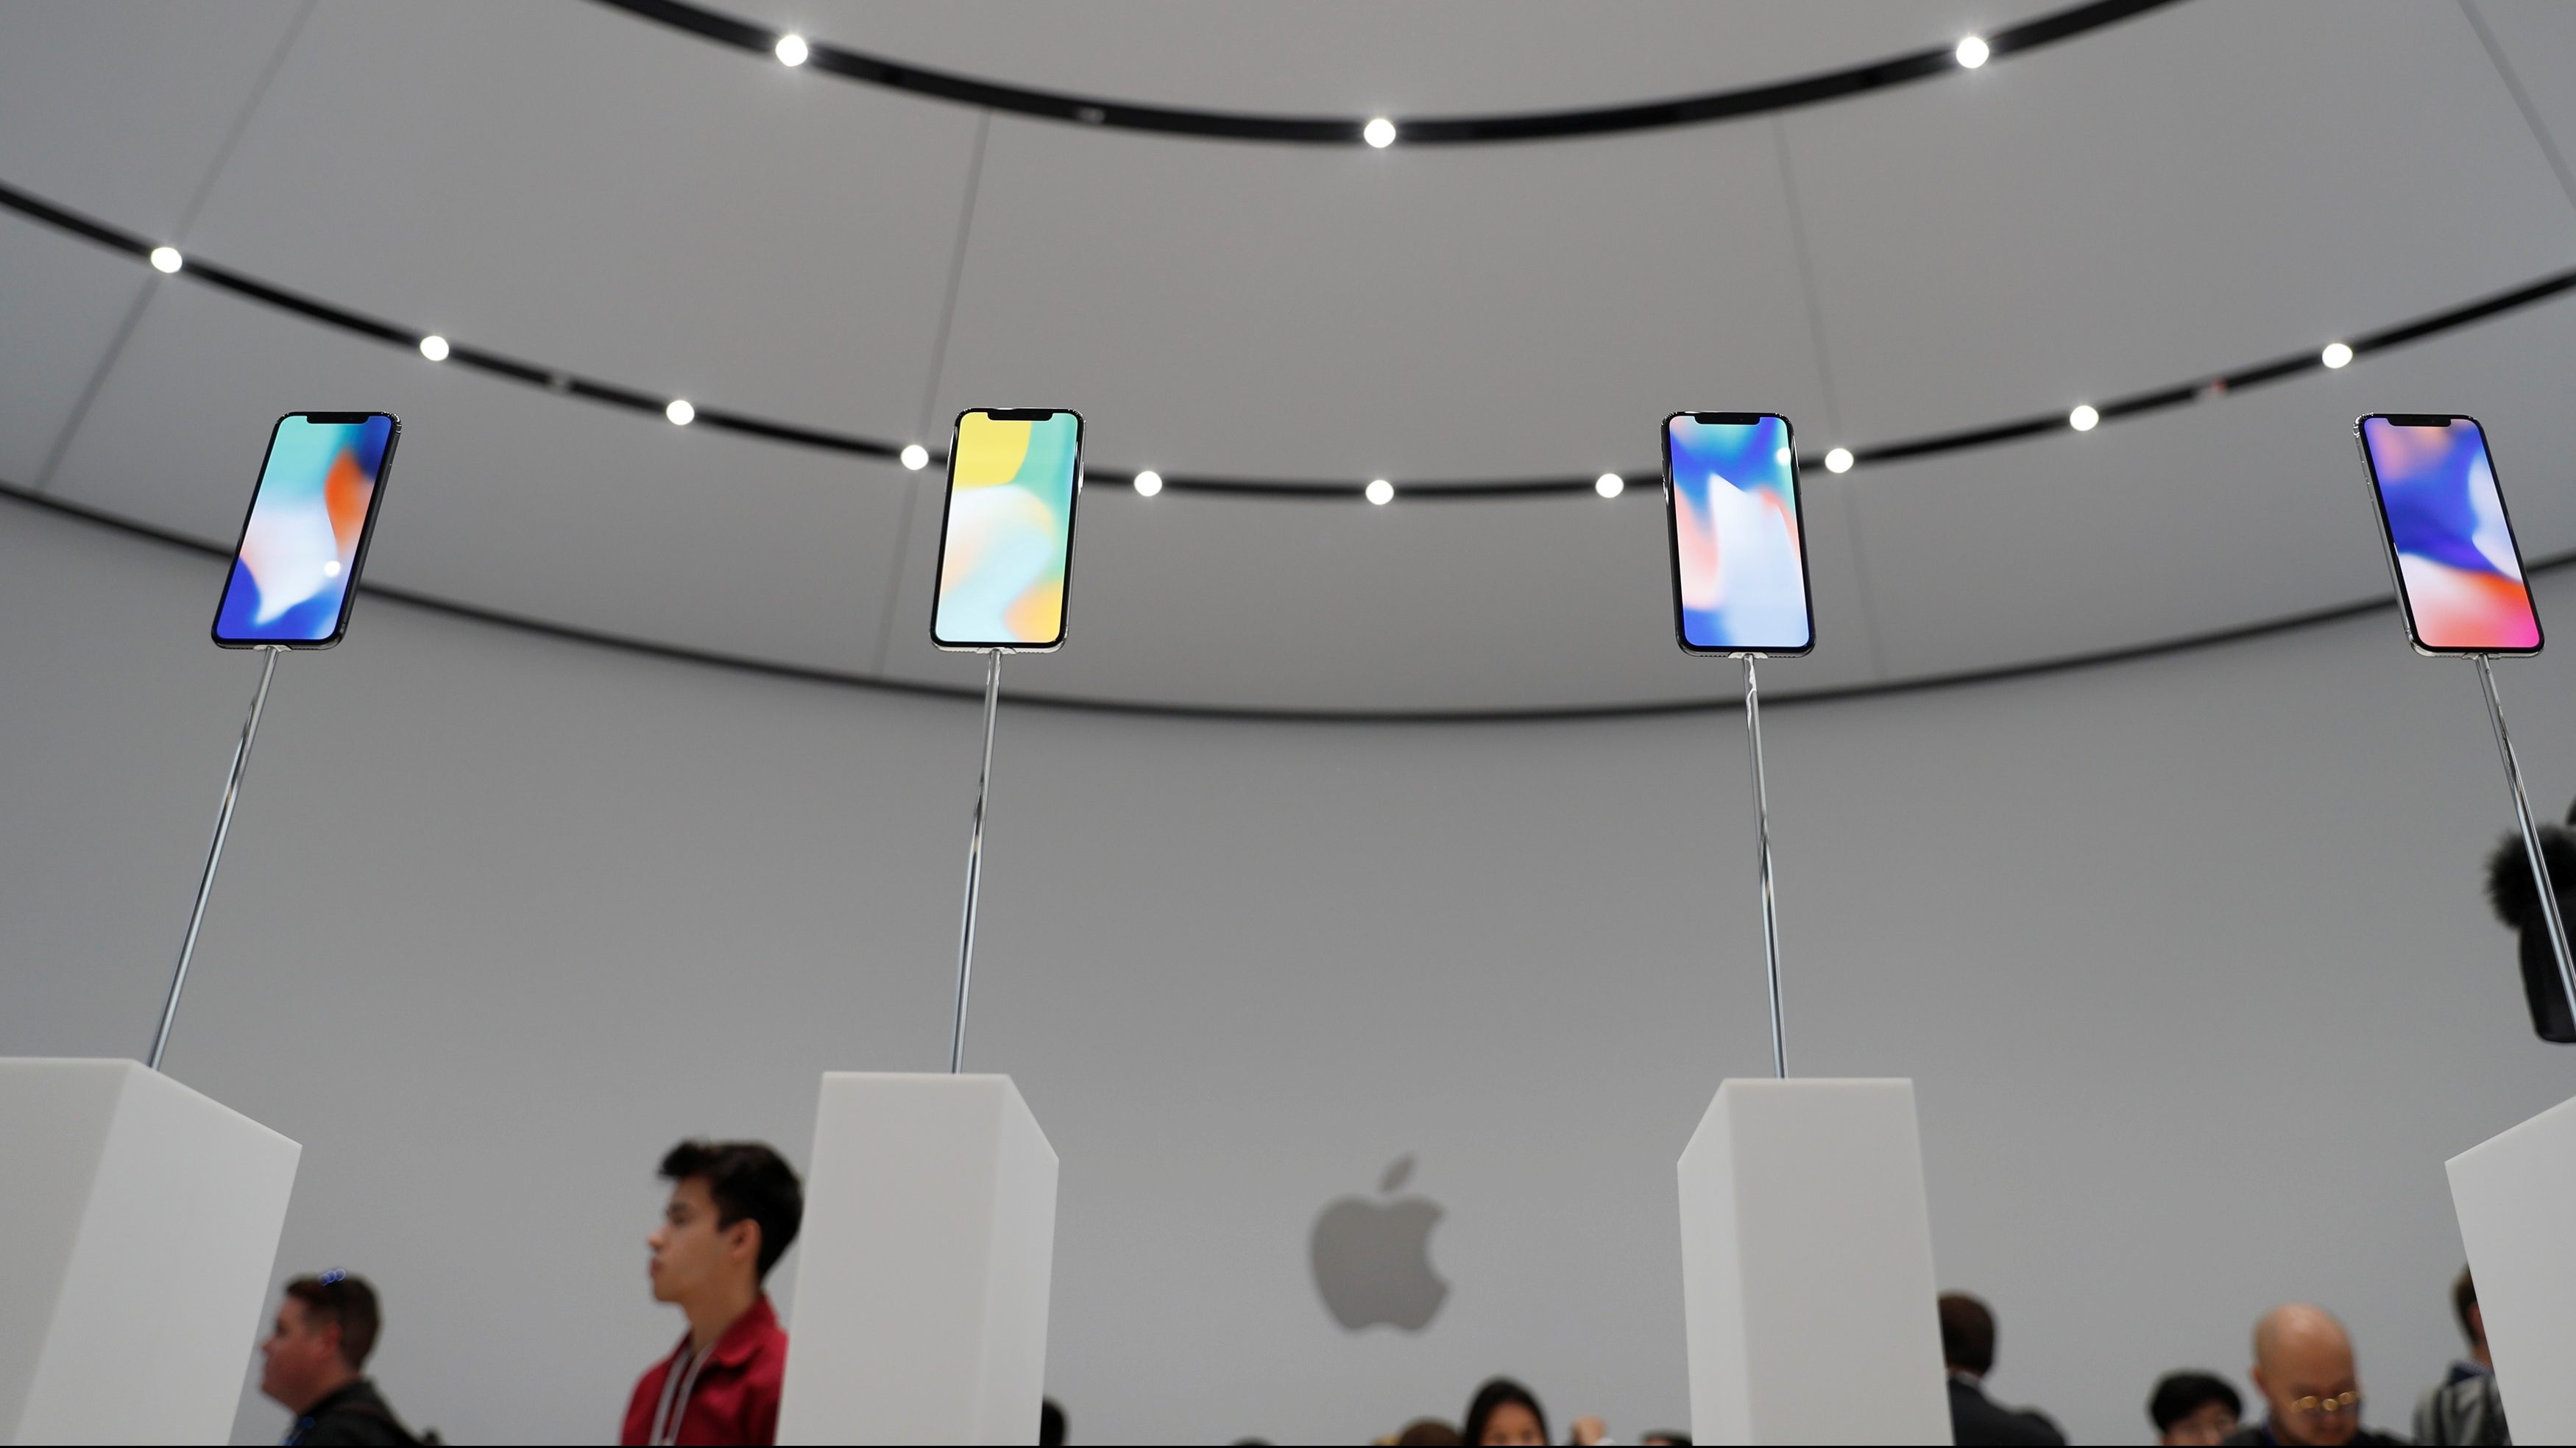 Apple iPhone X samples are displayed during a product launch event in Cupertino, California, U.S. September 12, 2017.